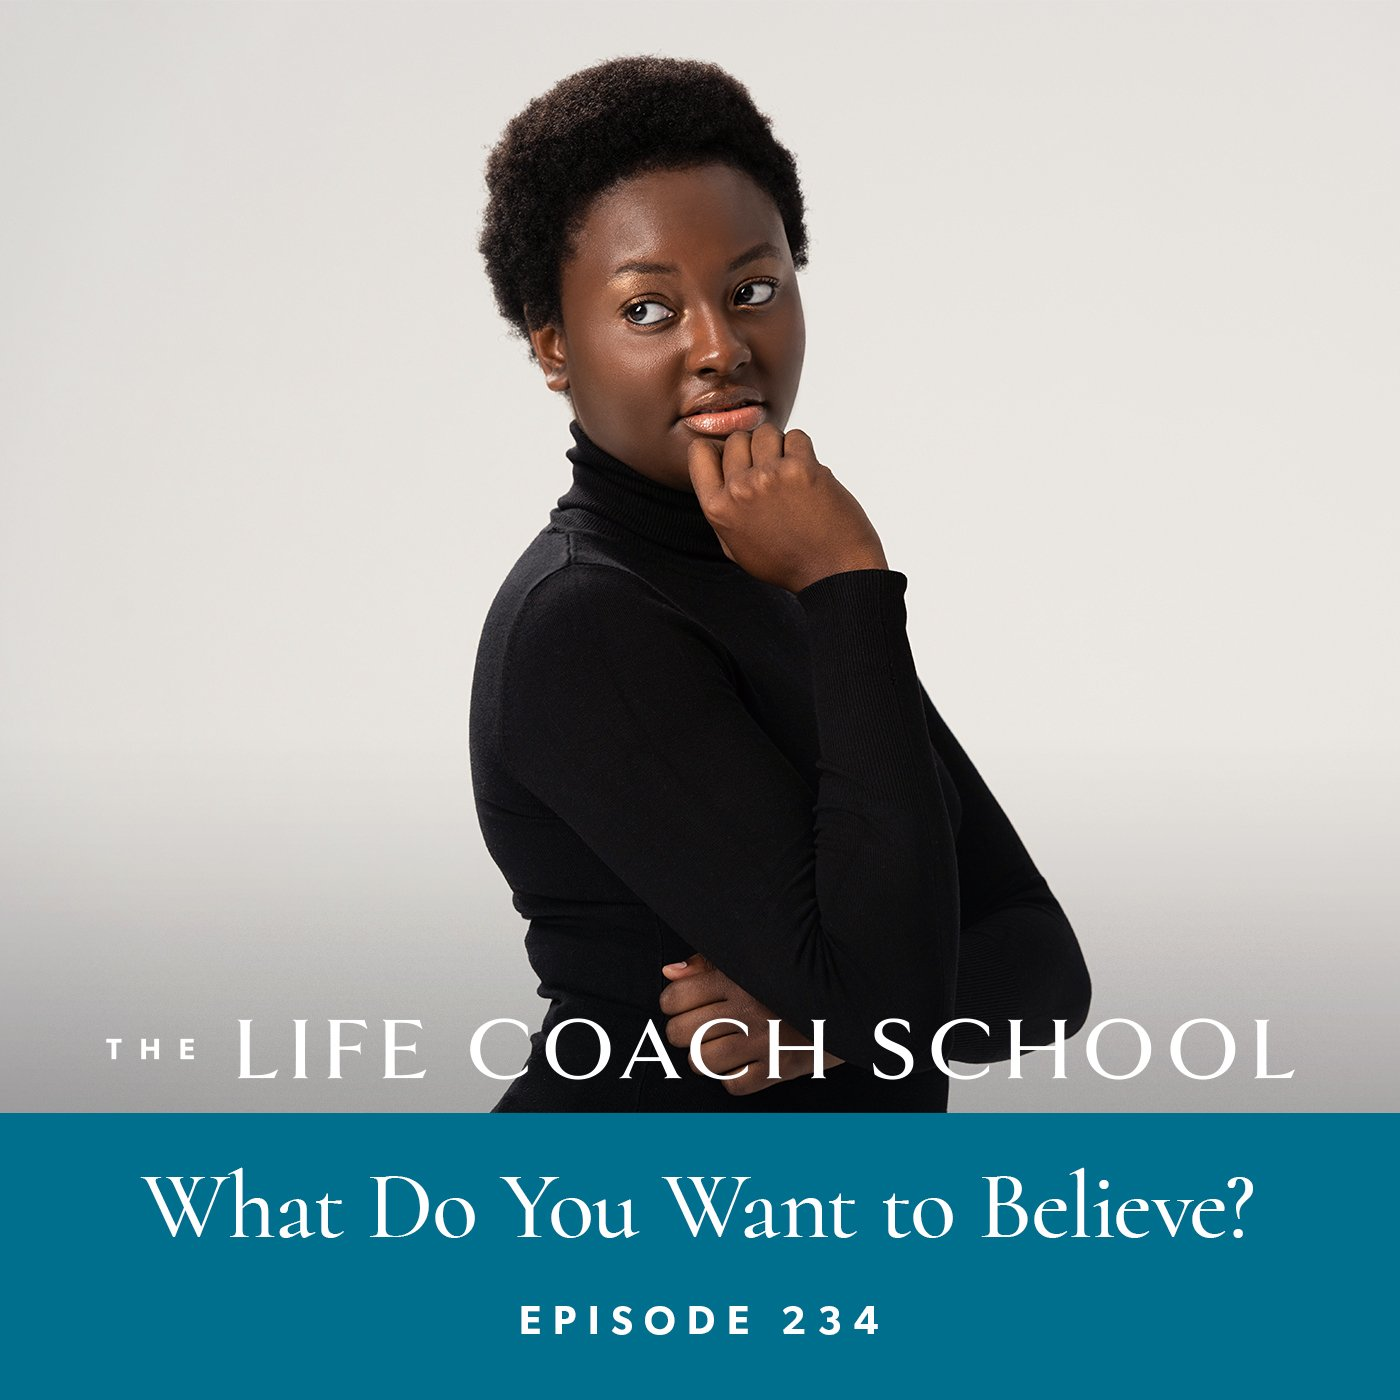 The Life Coach School Podcast with Brooke Castillo | Episode 234 | What Do You Want to Believe?